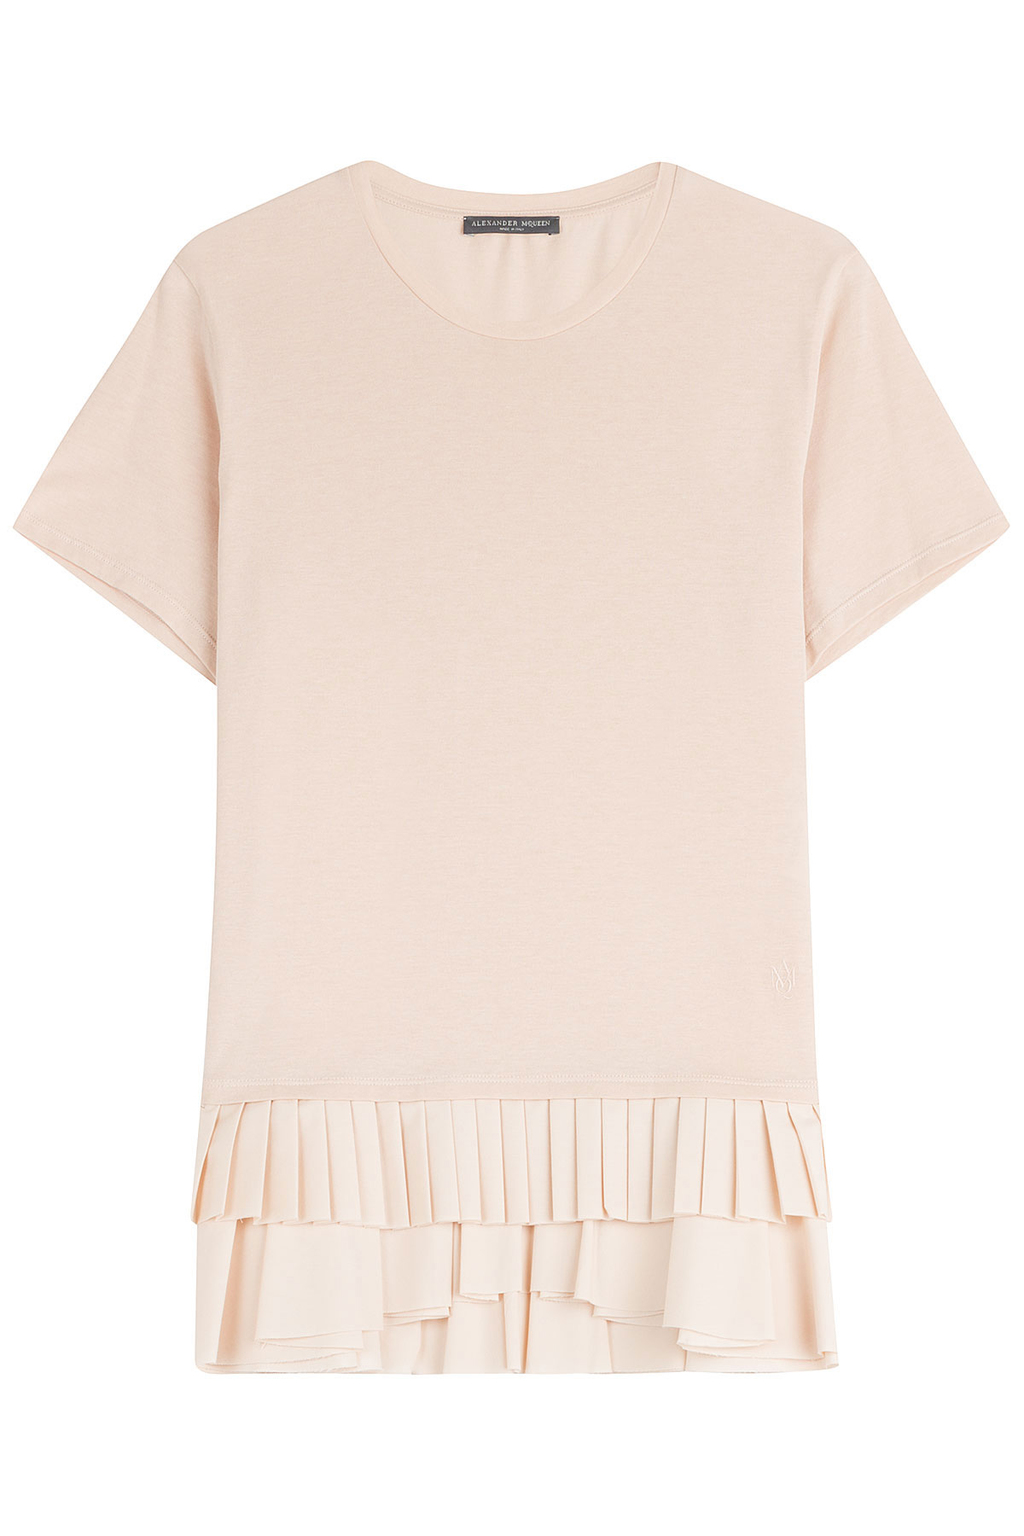 Pleated Ruffle T Shirt None - pattern: plain; style: t-shirt; predominant colour: blush; occasions: casual; length: standard; fibres: cotton - 100%; fit: body skimming; neckline: crew; sleeve length: short sleeve; sleeve style: standard; pattern type: fabric; texture group: jersey - stretchy/drapey; season: s/s 2016; wardrobe: basic